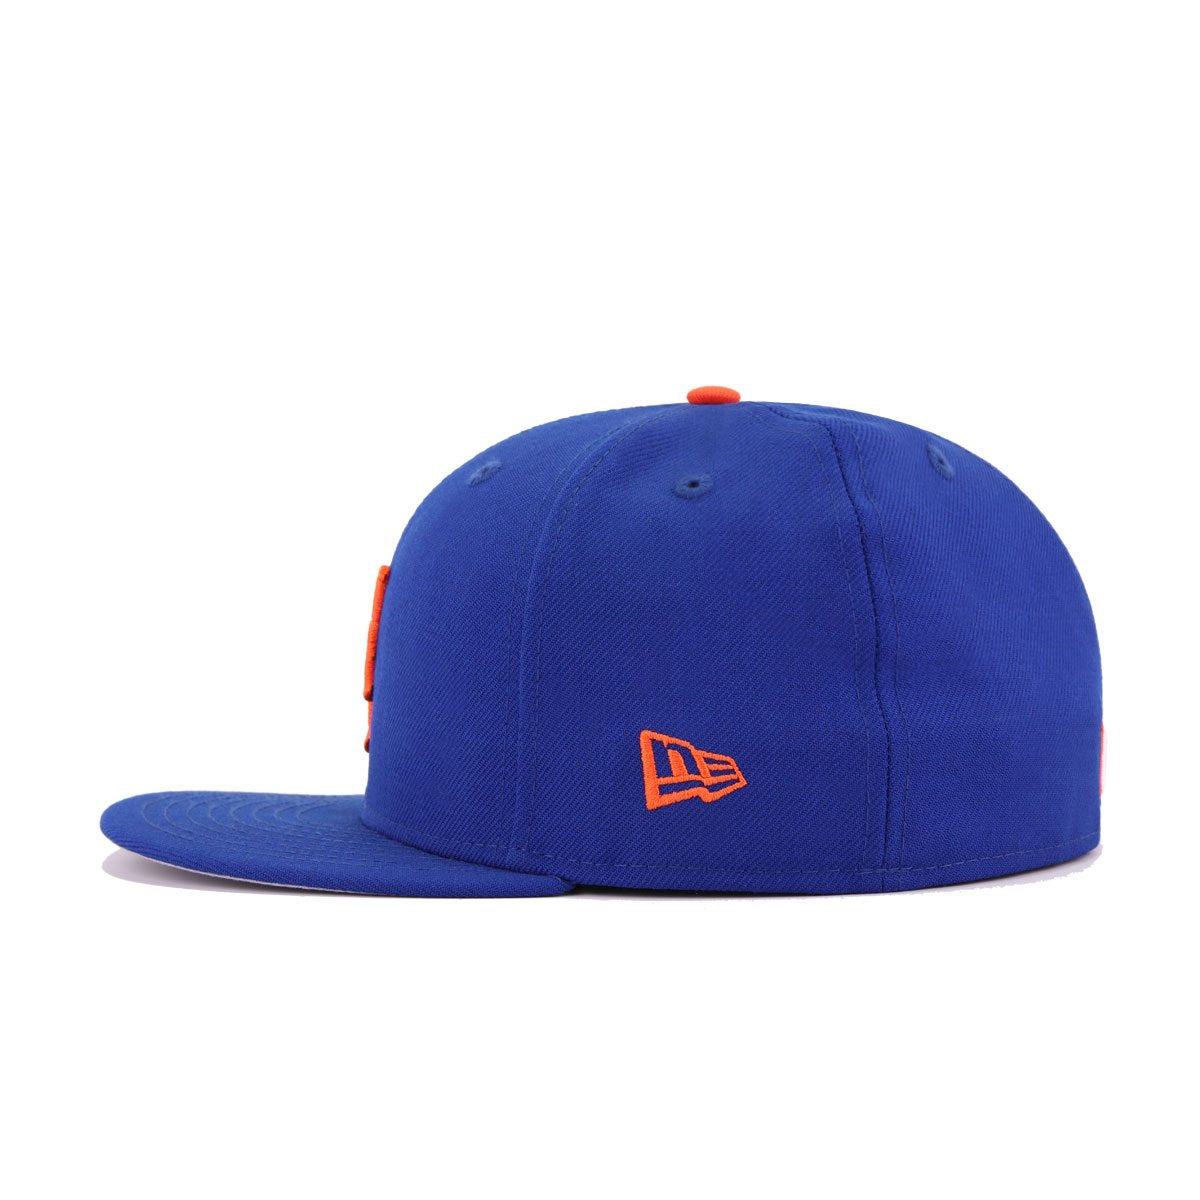 New York Mets Light Royal Blue 1969 World Series New Era 59Fifty Fitted